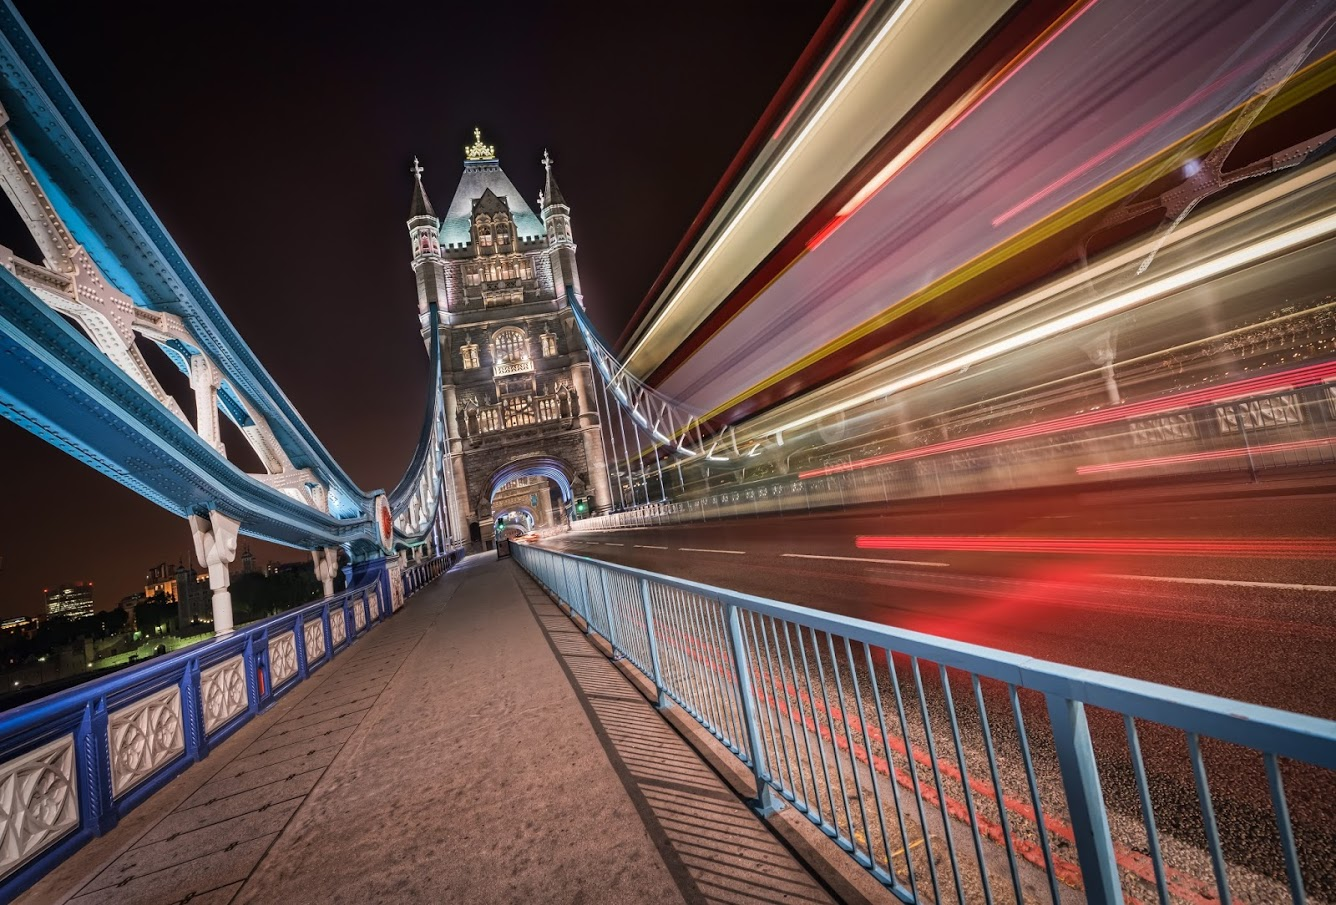 2. Tower Bridge, London, England 3